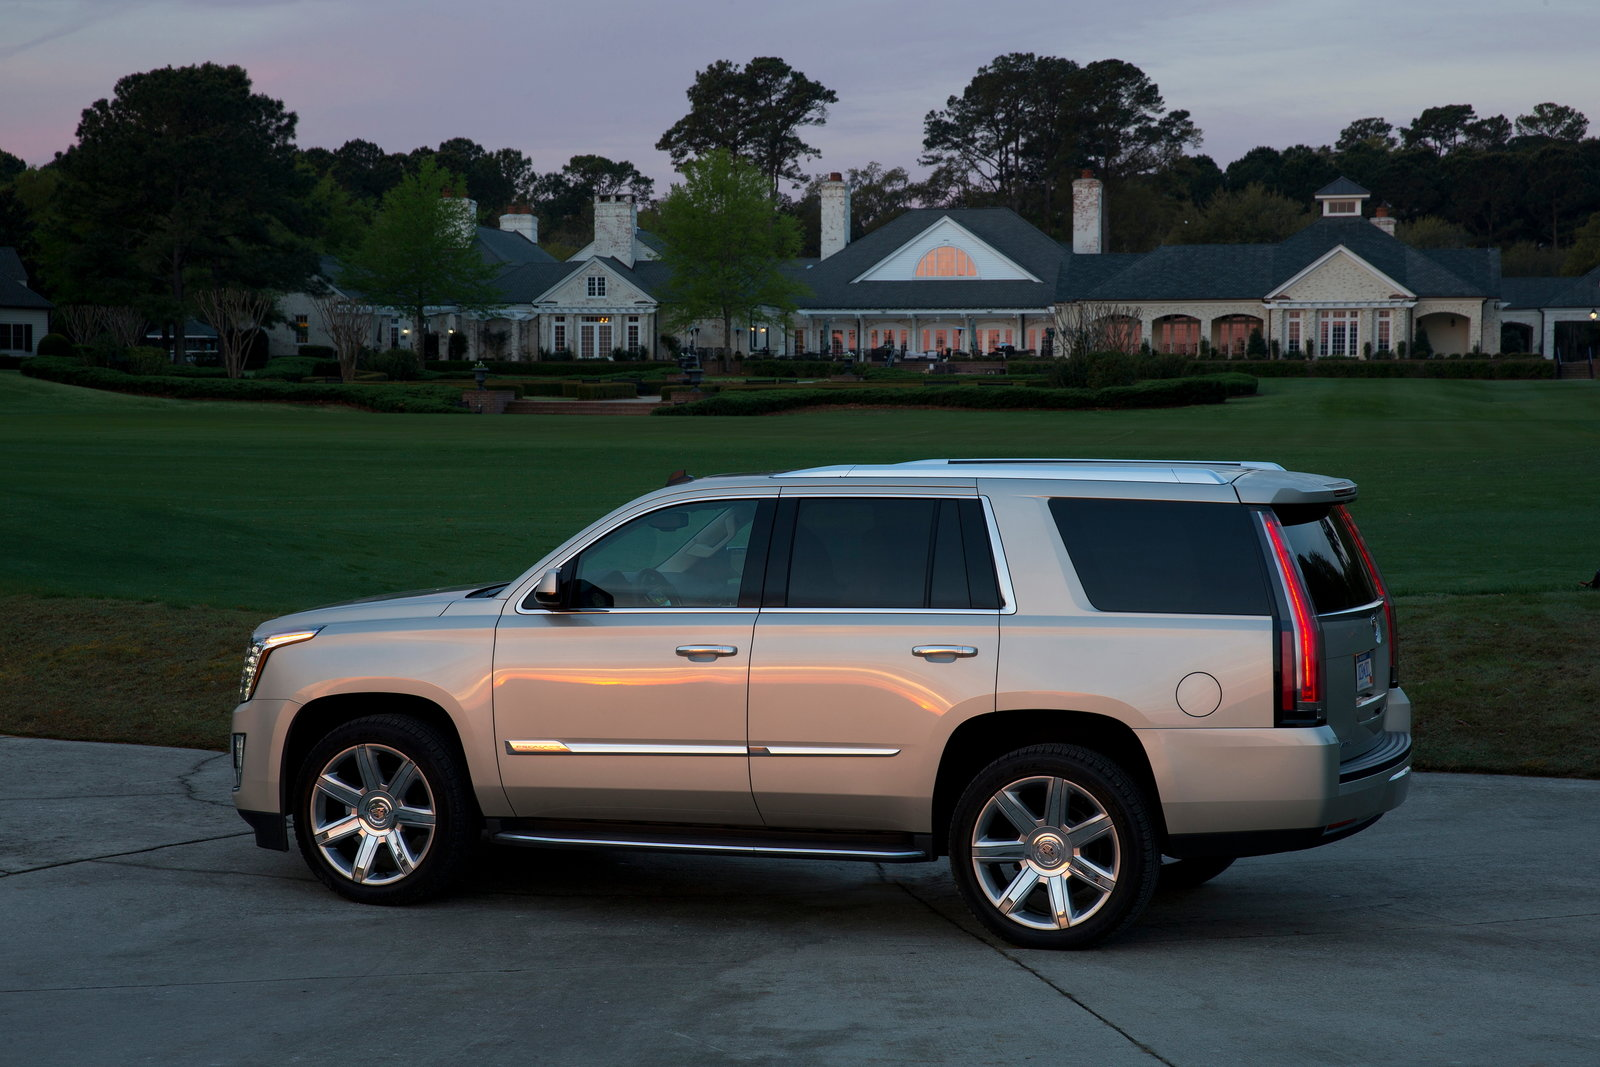 2017 cadillac escalade styles features highlights. Black Bedroom Furniture Sets. Home Design Ideas